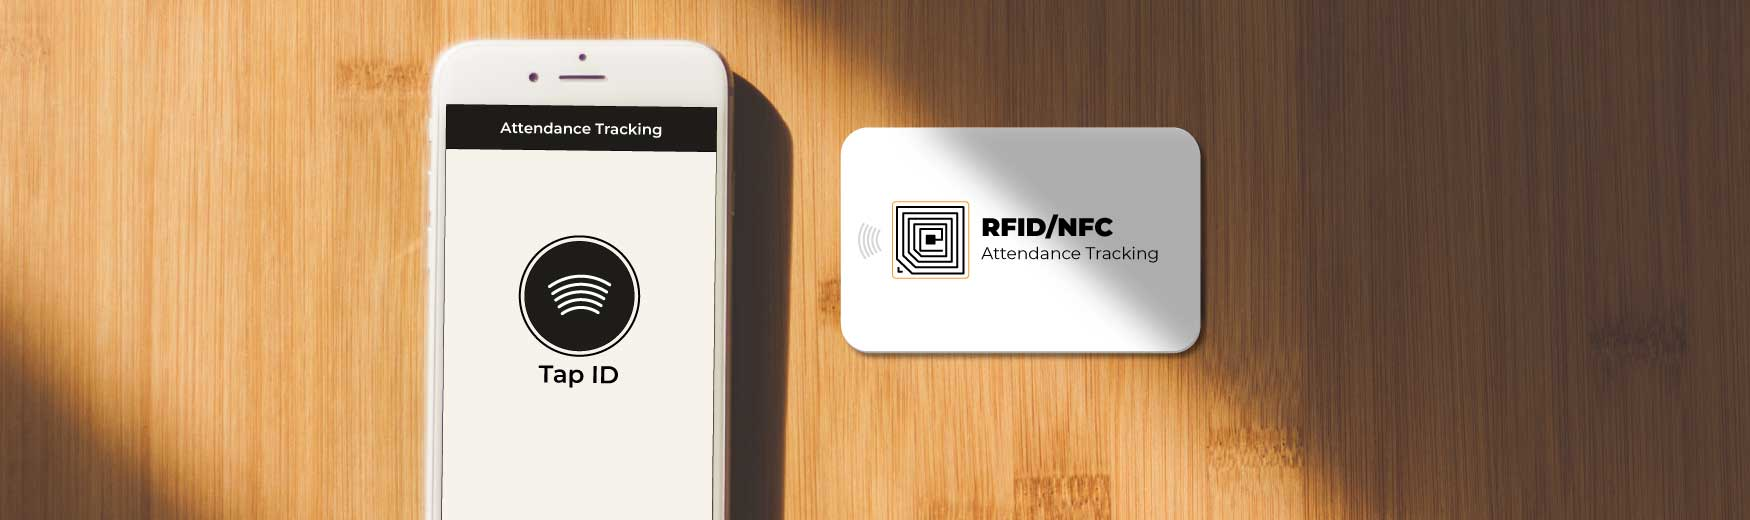 RFID Attendance Tacking feature